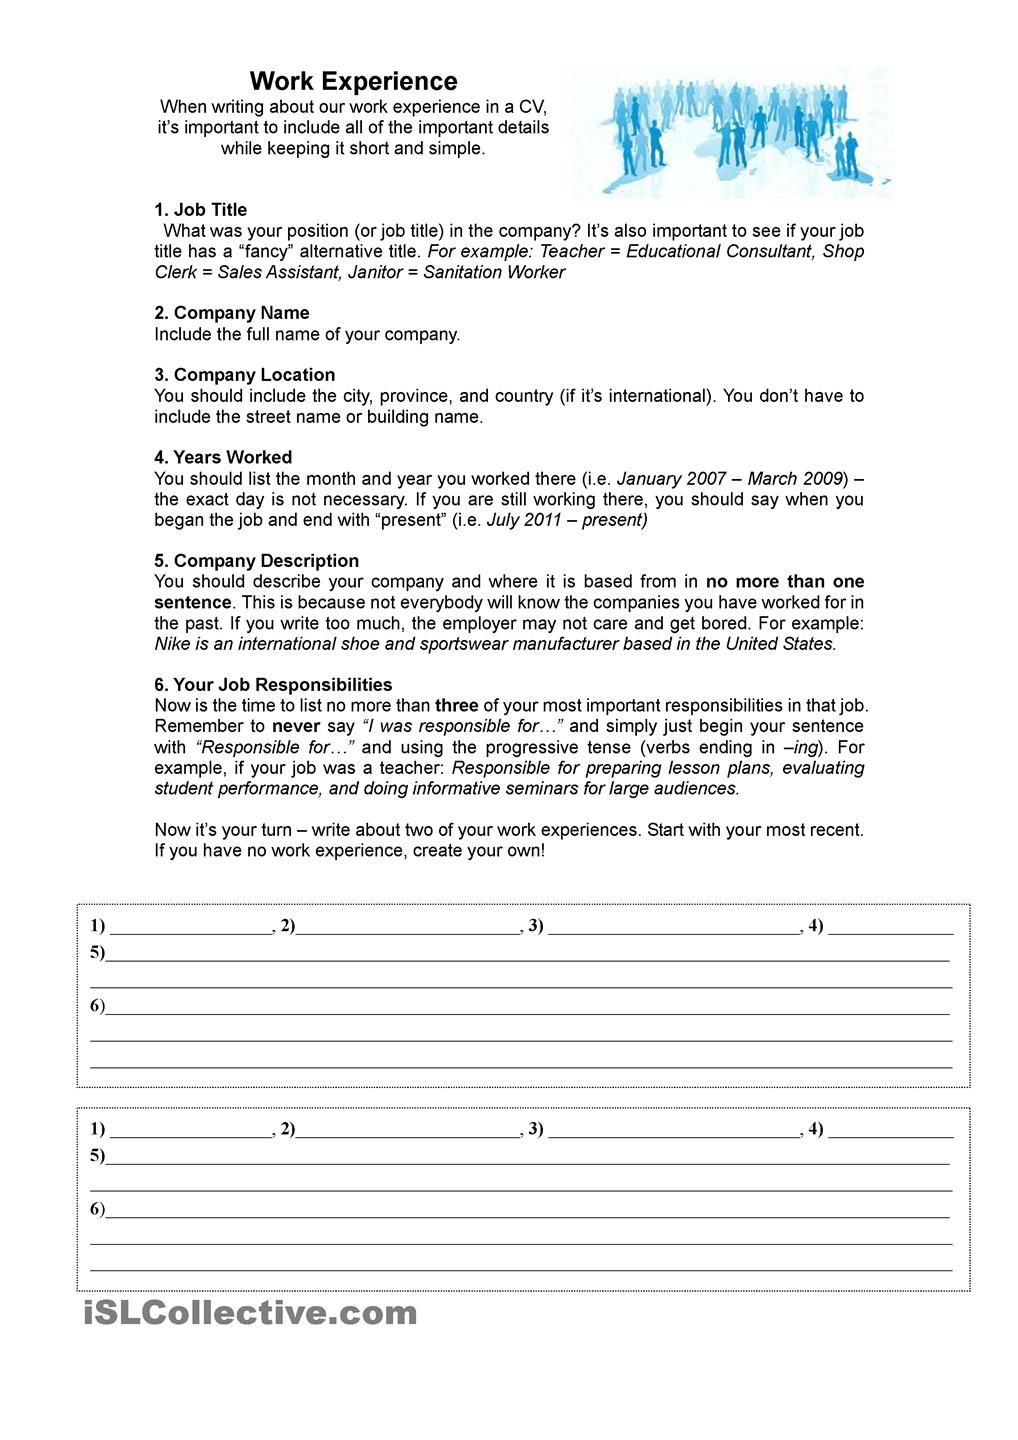 Work Experience For A Cv Resume Worksheet Template Word Problem Worksheets Work Experience